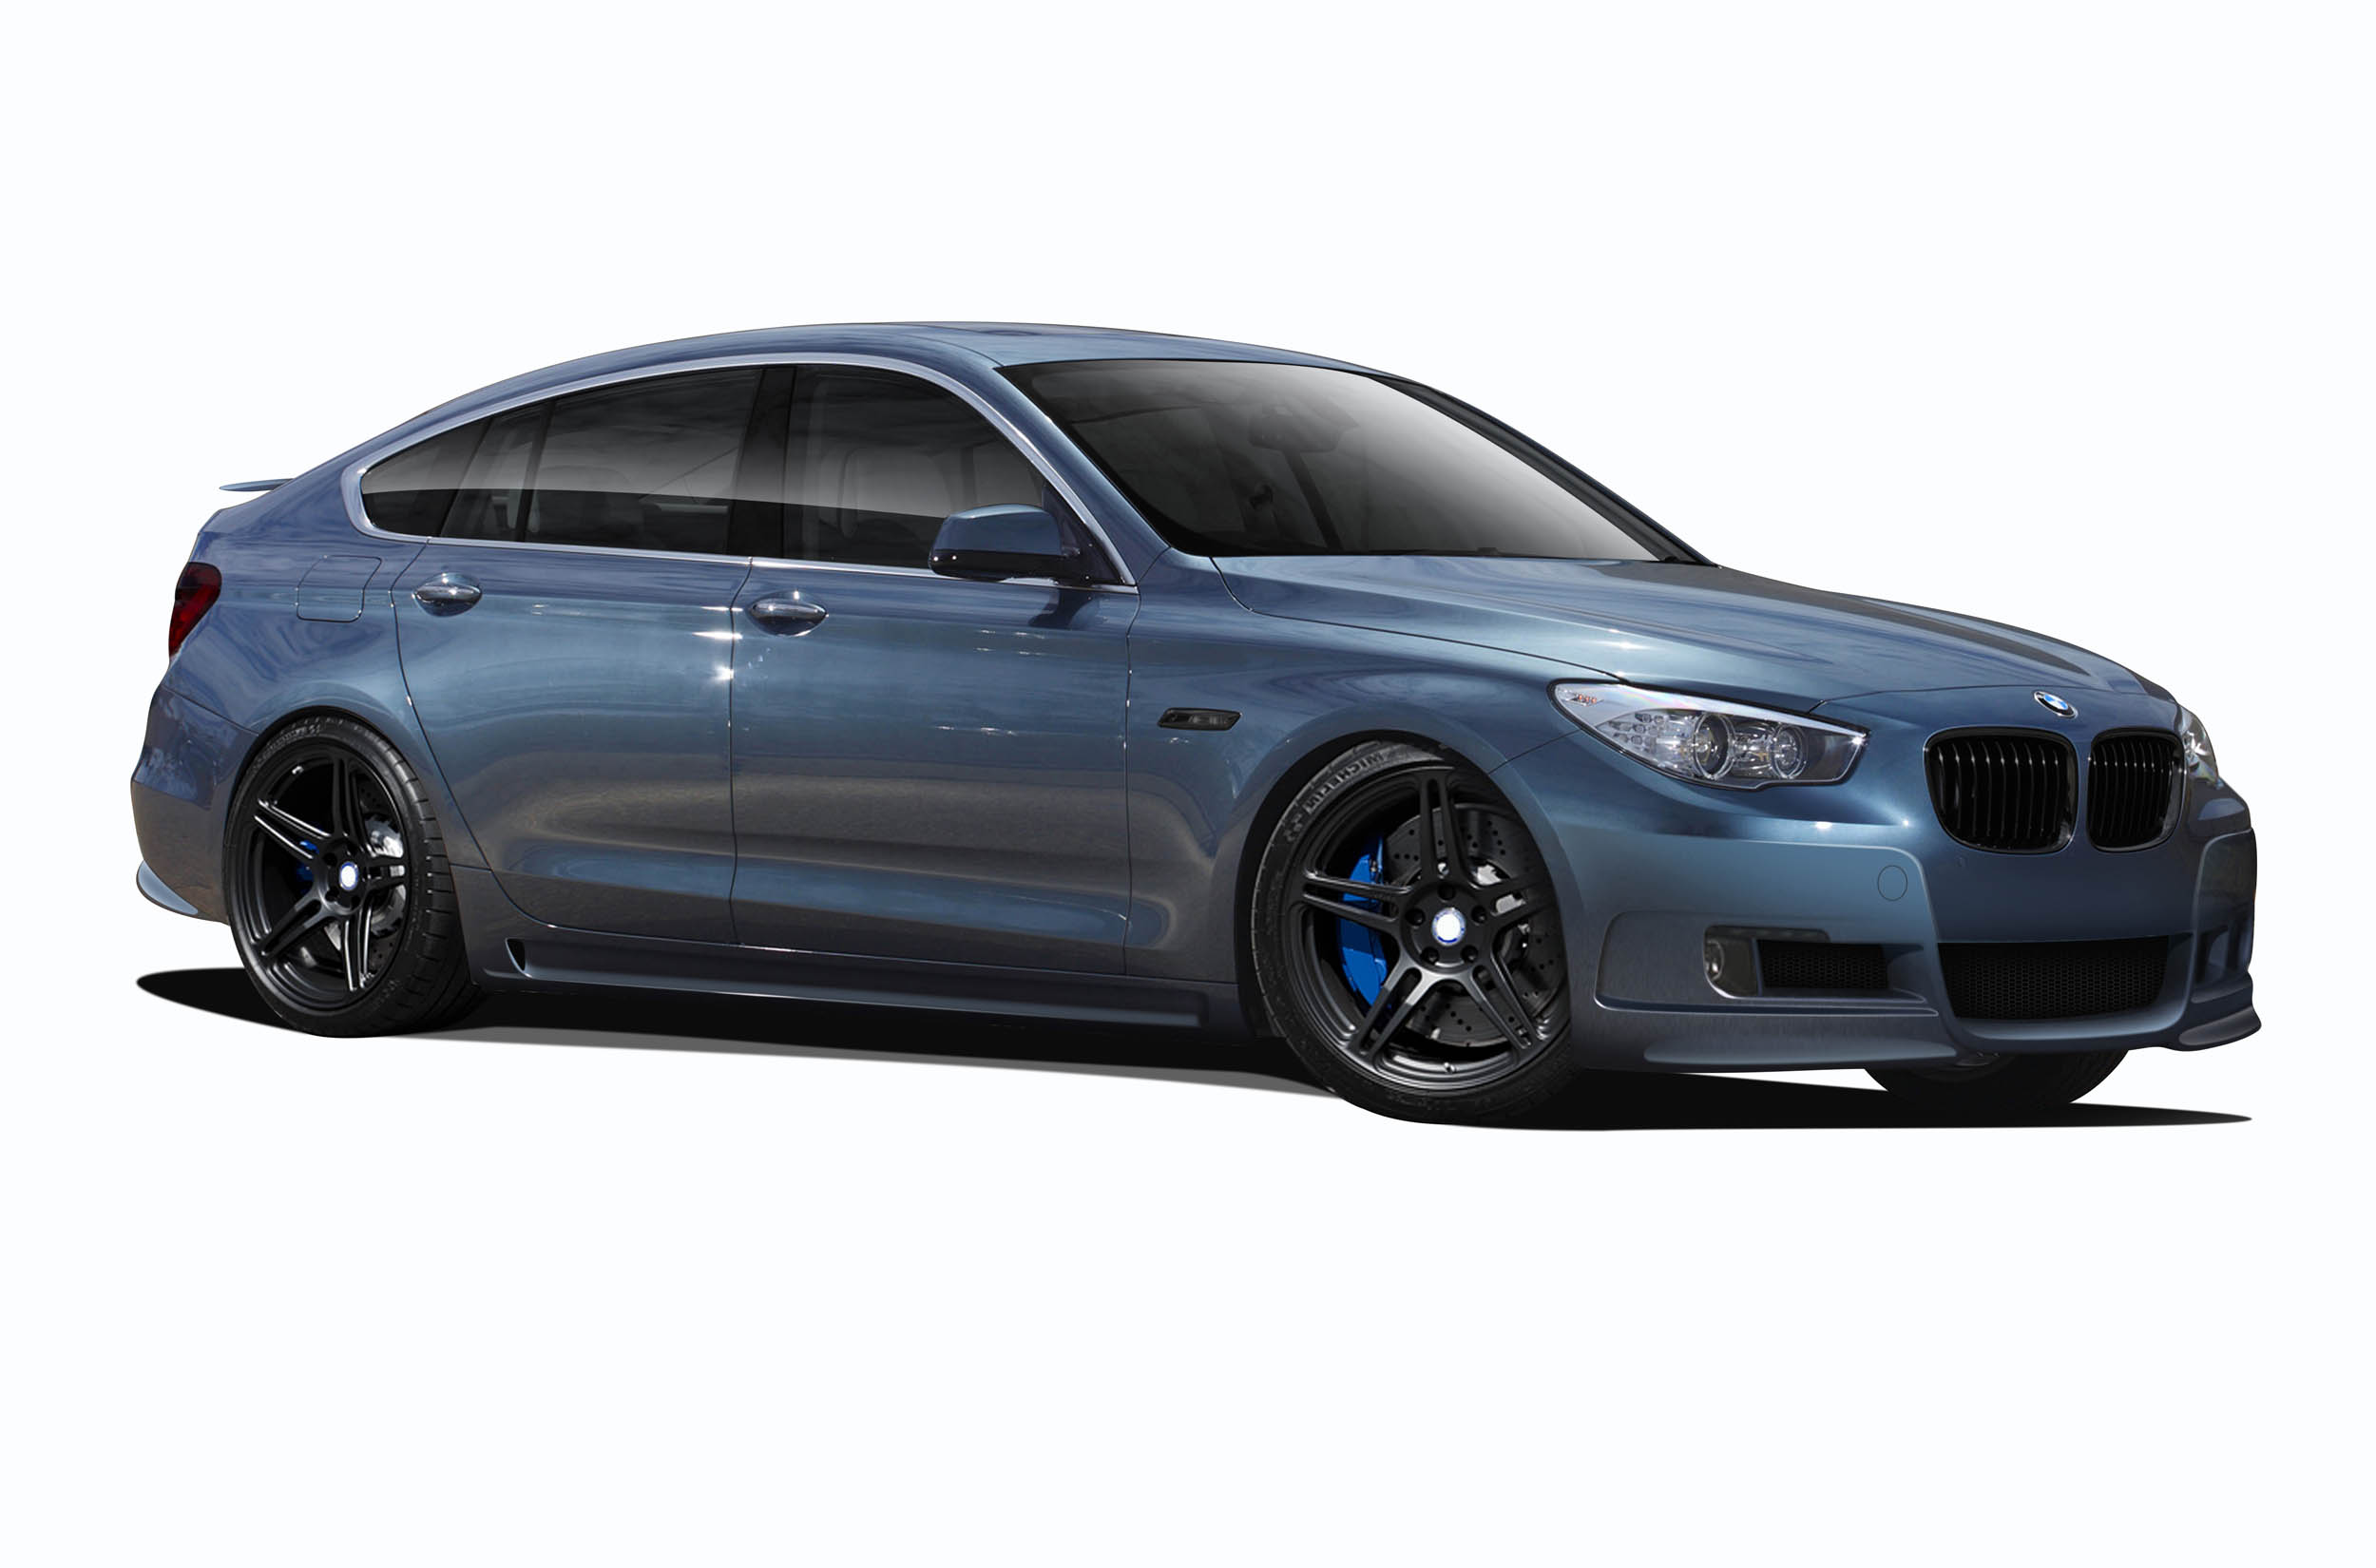 Body Kit Bodykit for 2016 BMW 5 Series ALL - BMW 5 Series GT Gran Turismo F07 AF-1 Complete Body Kit ( GFK ) - 5 Piece - Includes AF-1 Front Bum